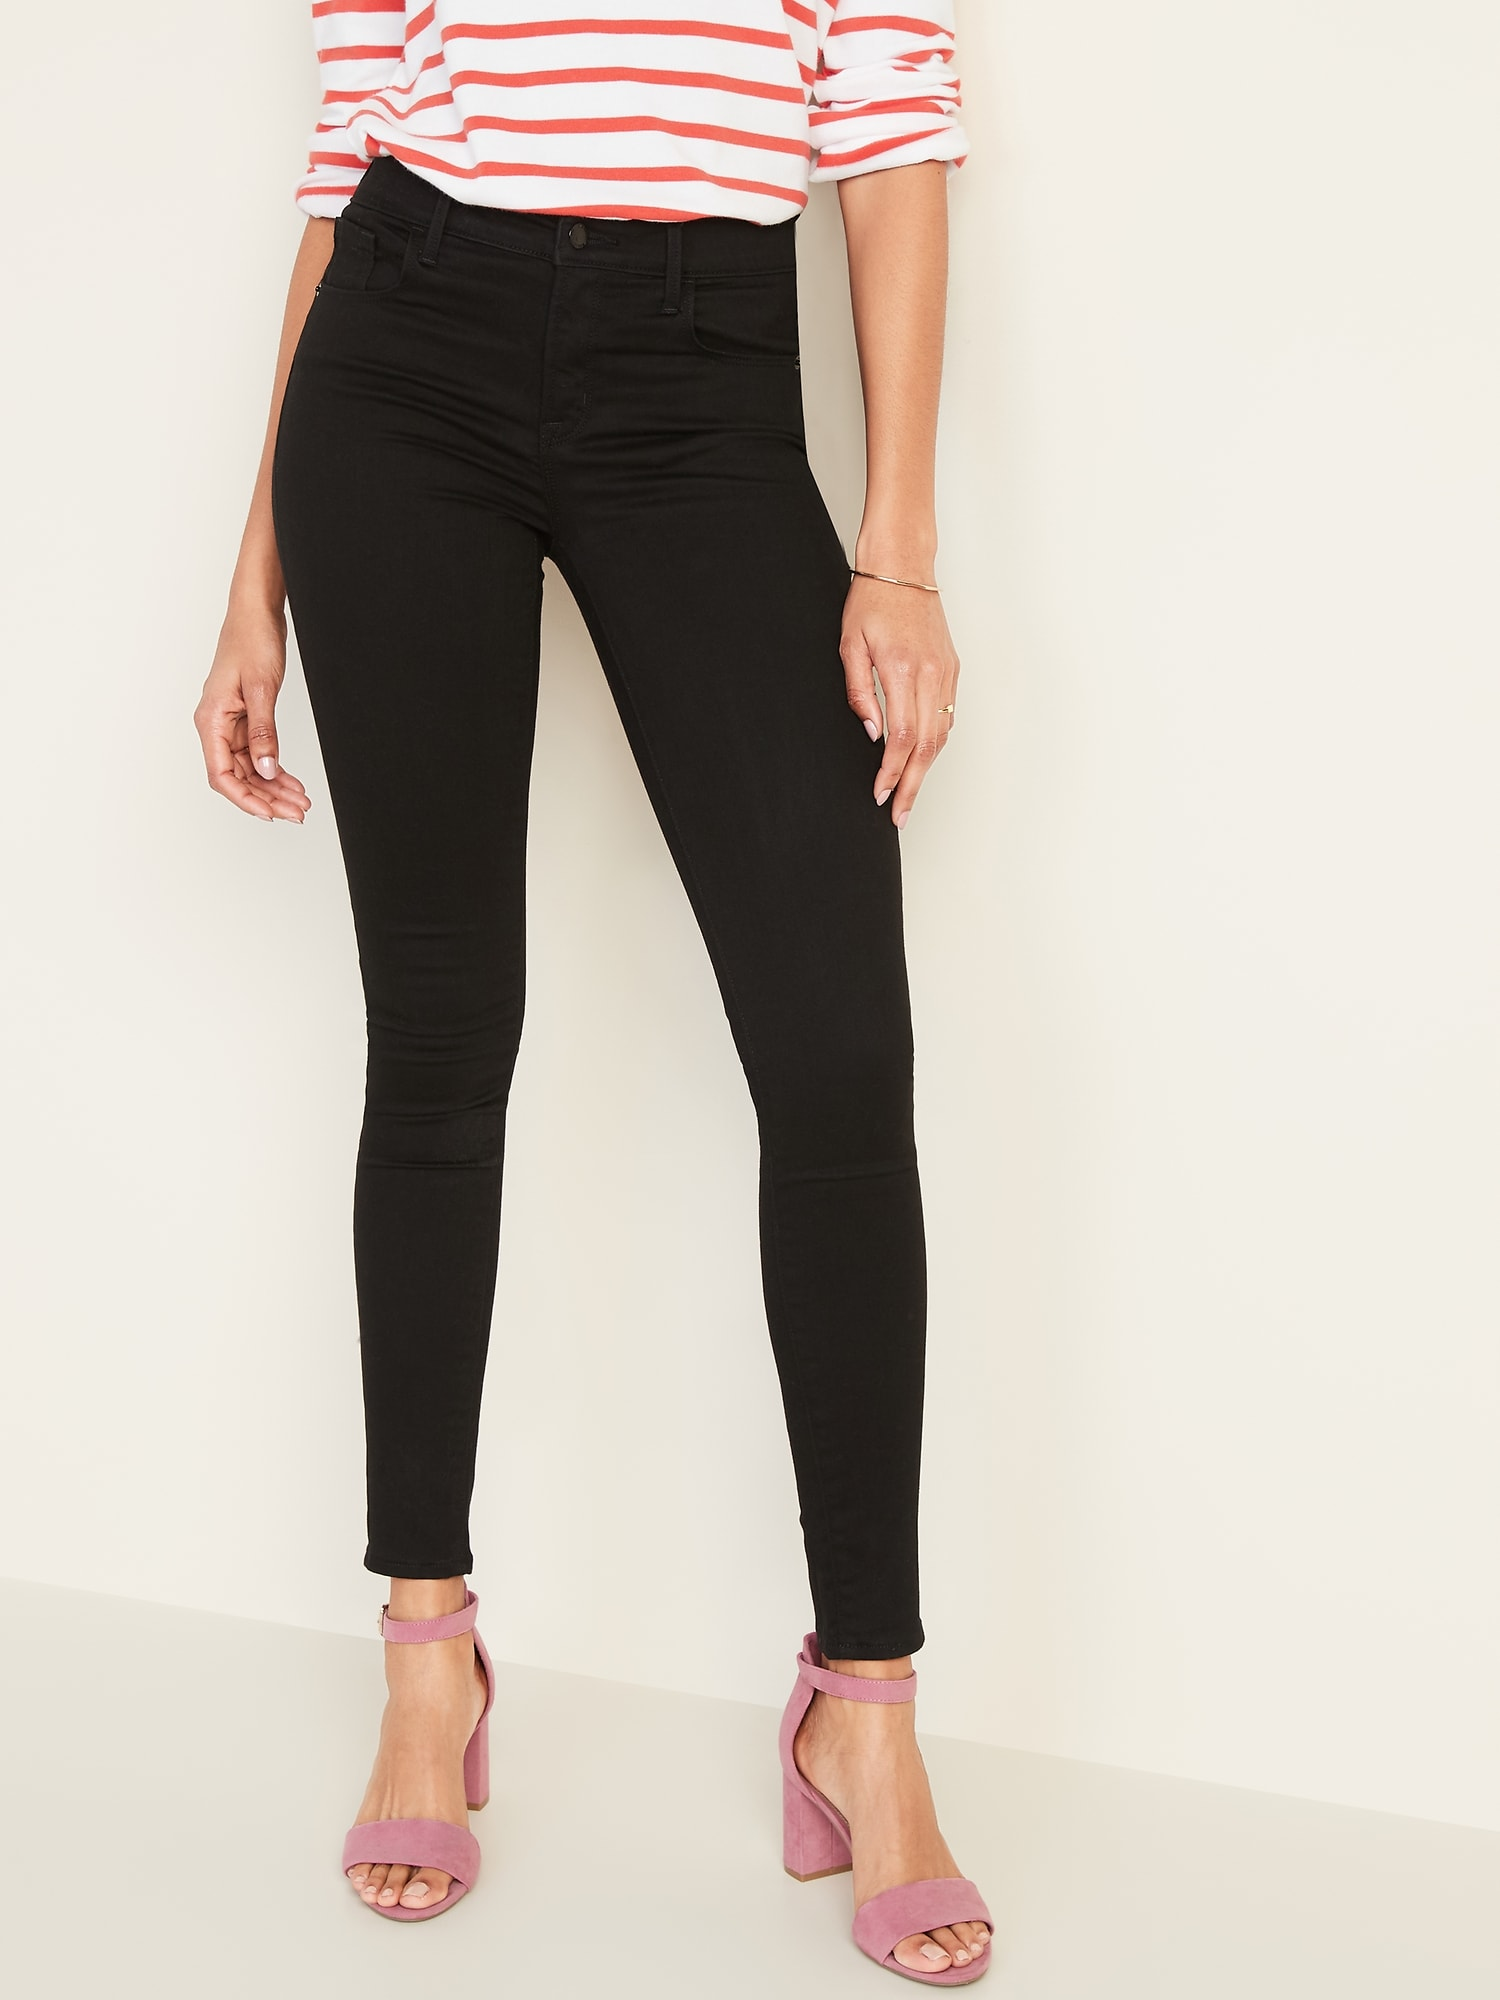 778908a5aa Mid-Rise Built-In Sculpt Never-Fade Rockstar Super Skinny Jeans for Women